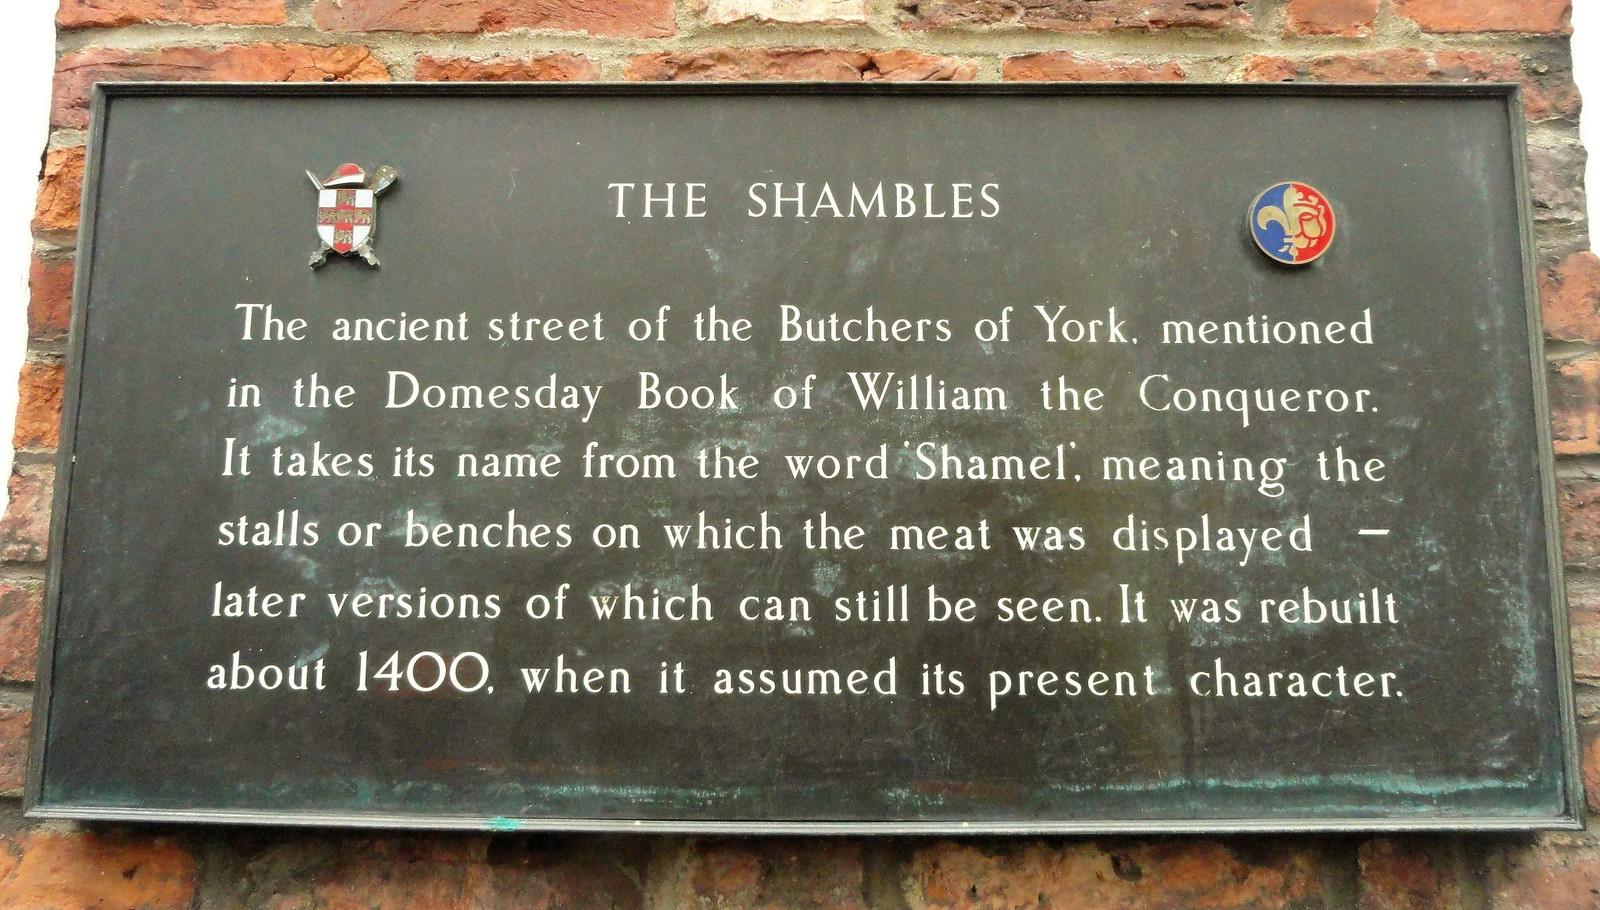 The Shambles, Heritage Plaque, York. Credit Peter Hughes